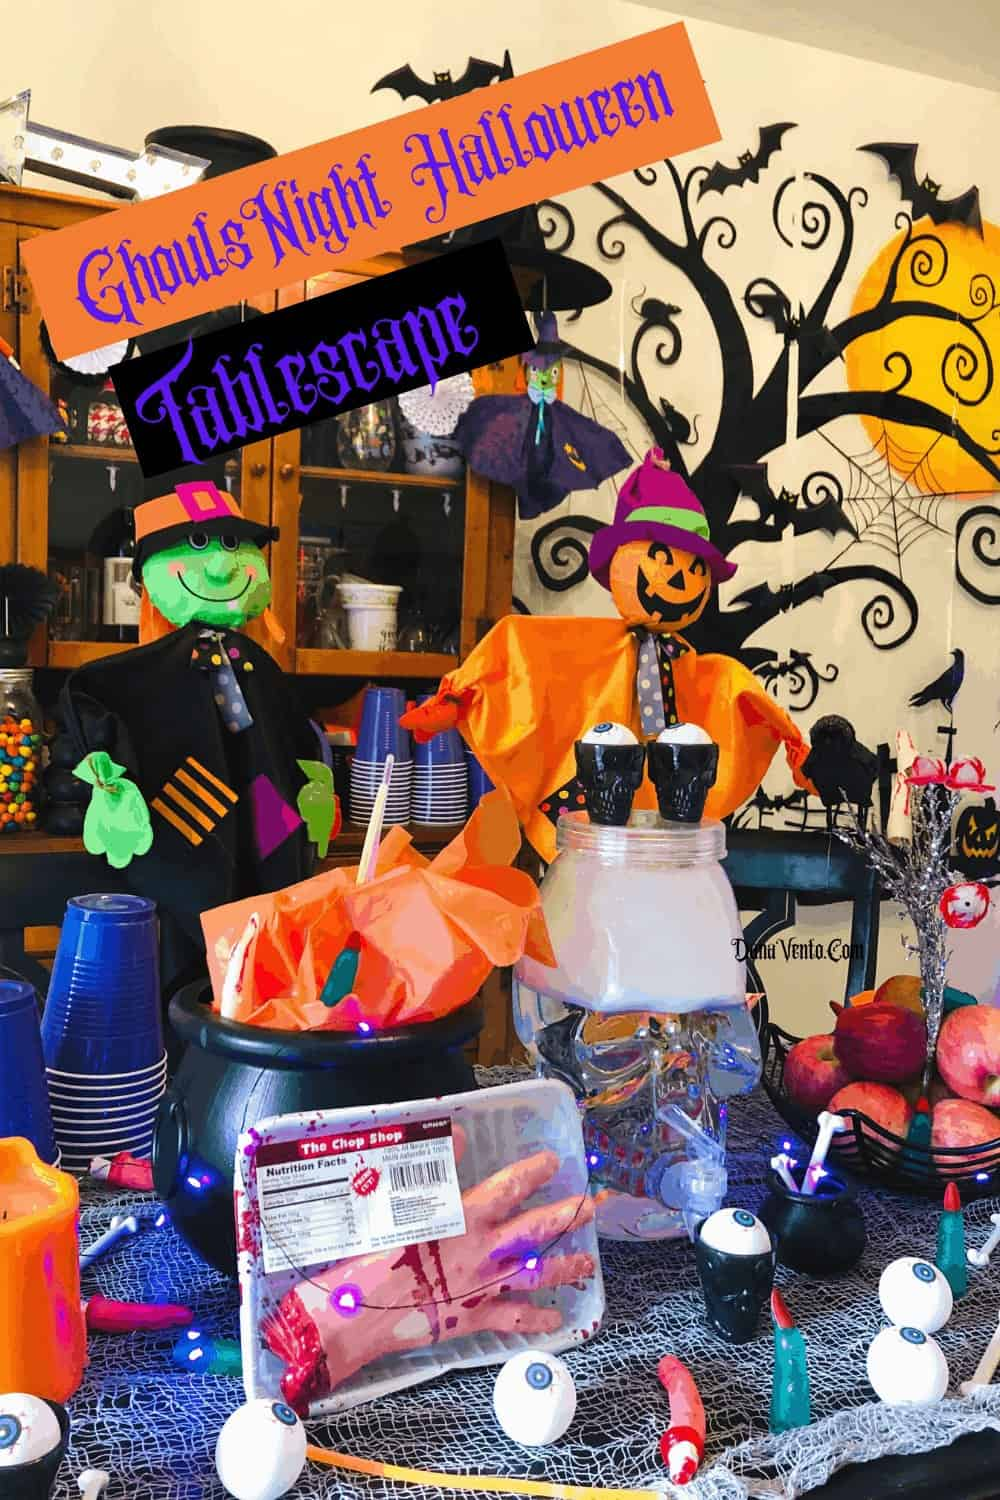 Ghouls Night Out Party Theme for Halloween